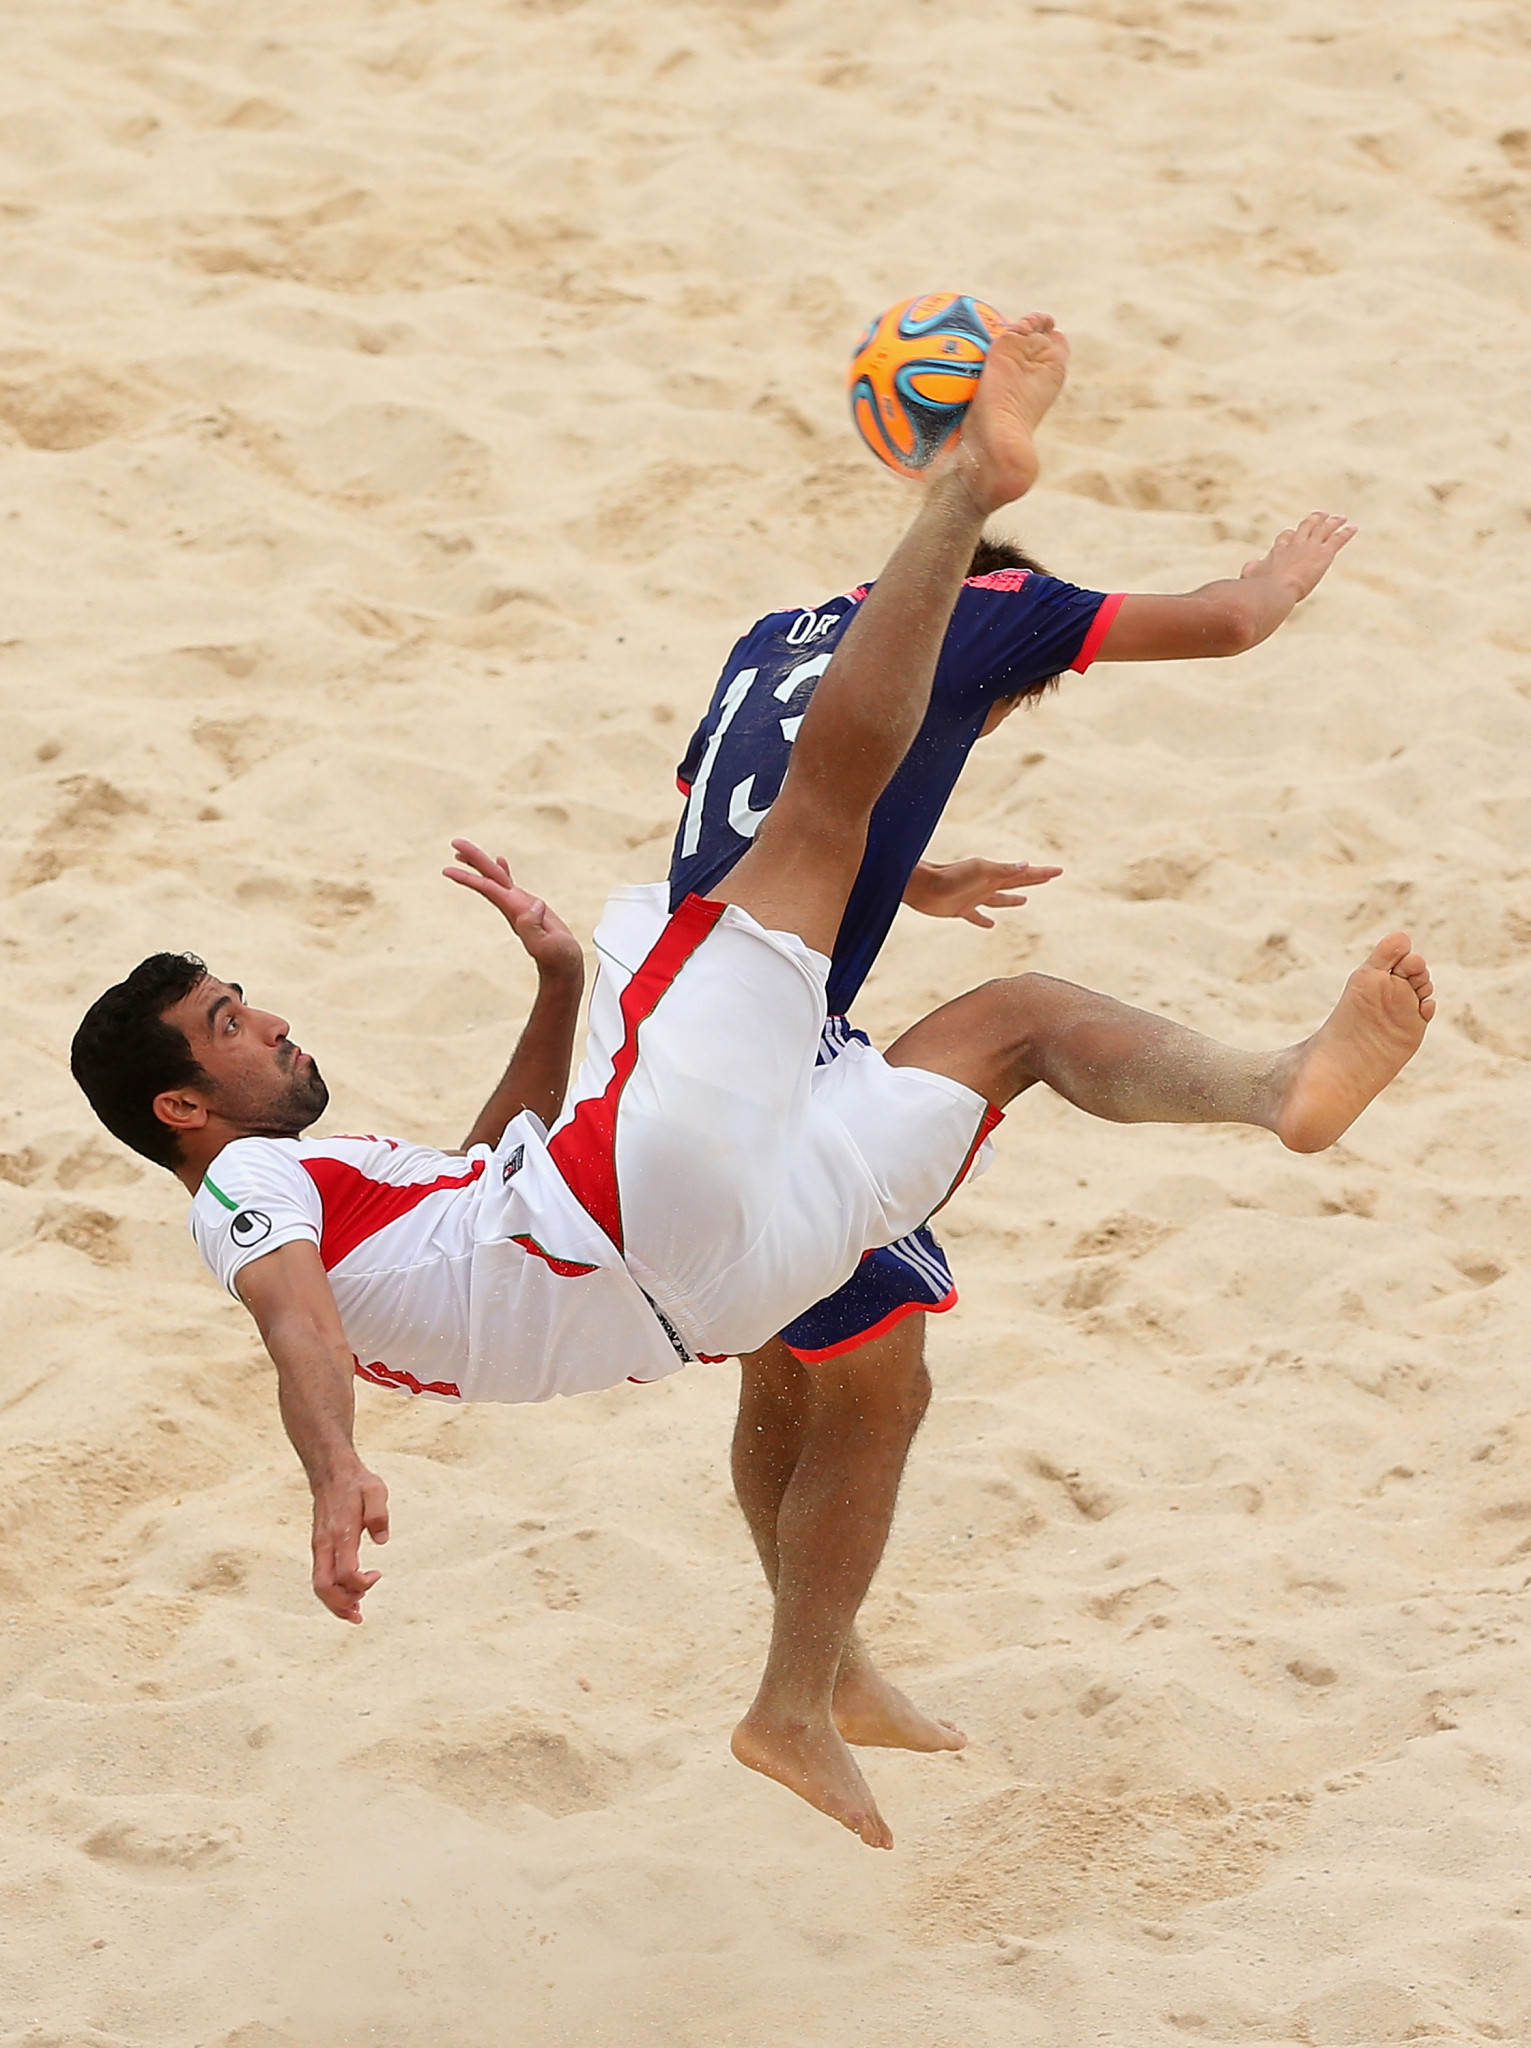 Mohammadali Mokhtari is among the 16 players named on Iran's men's beach soccer team for the 2019 ANOC World Beach Games in Qatar ©Getty Images